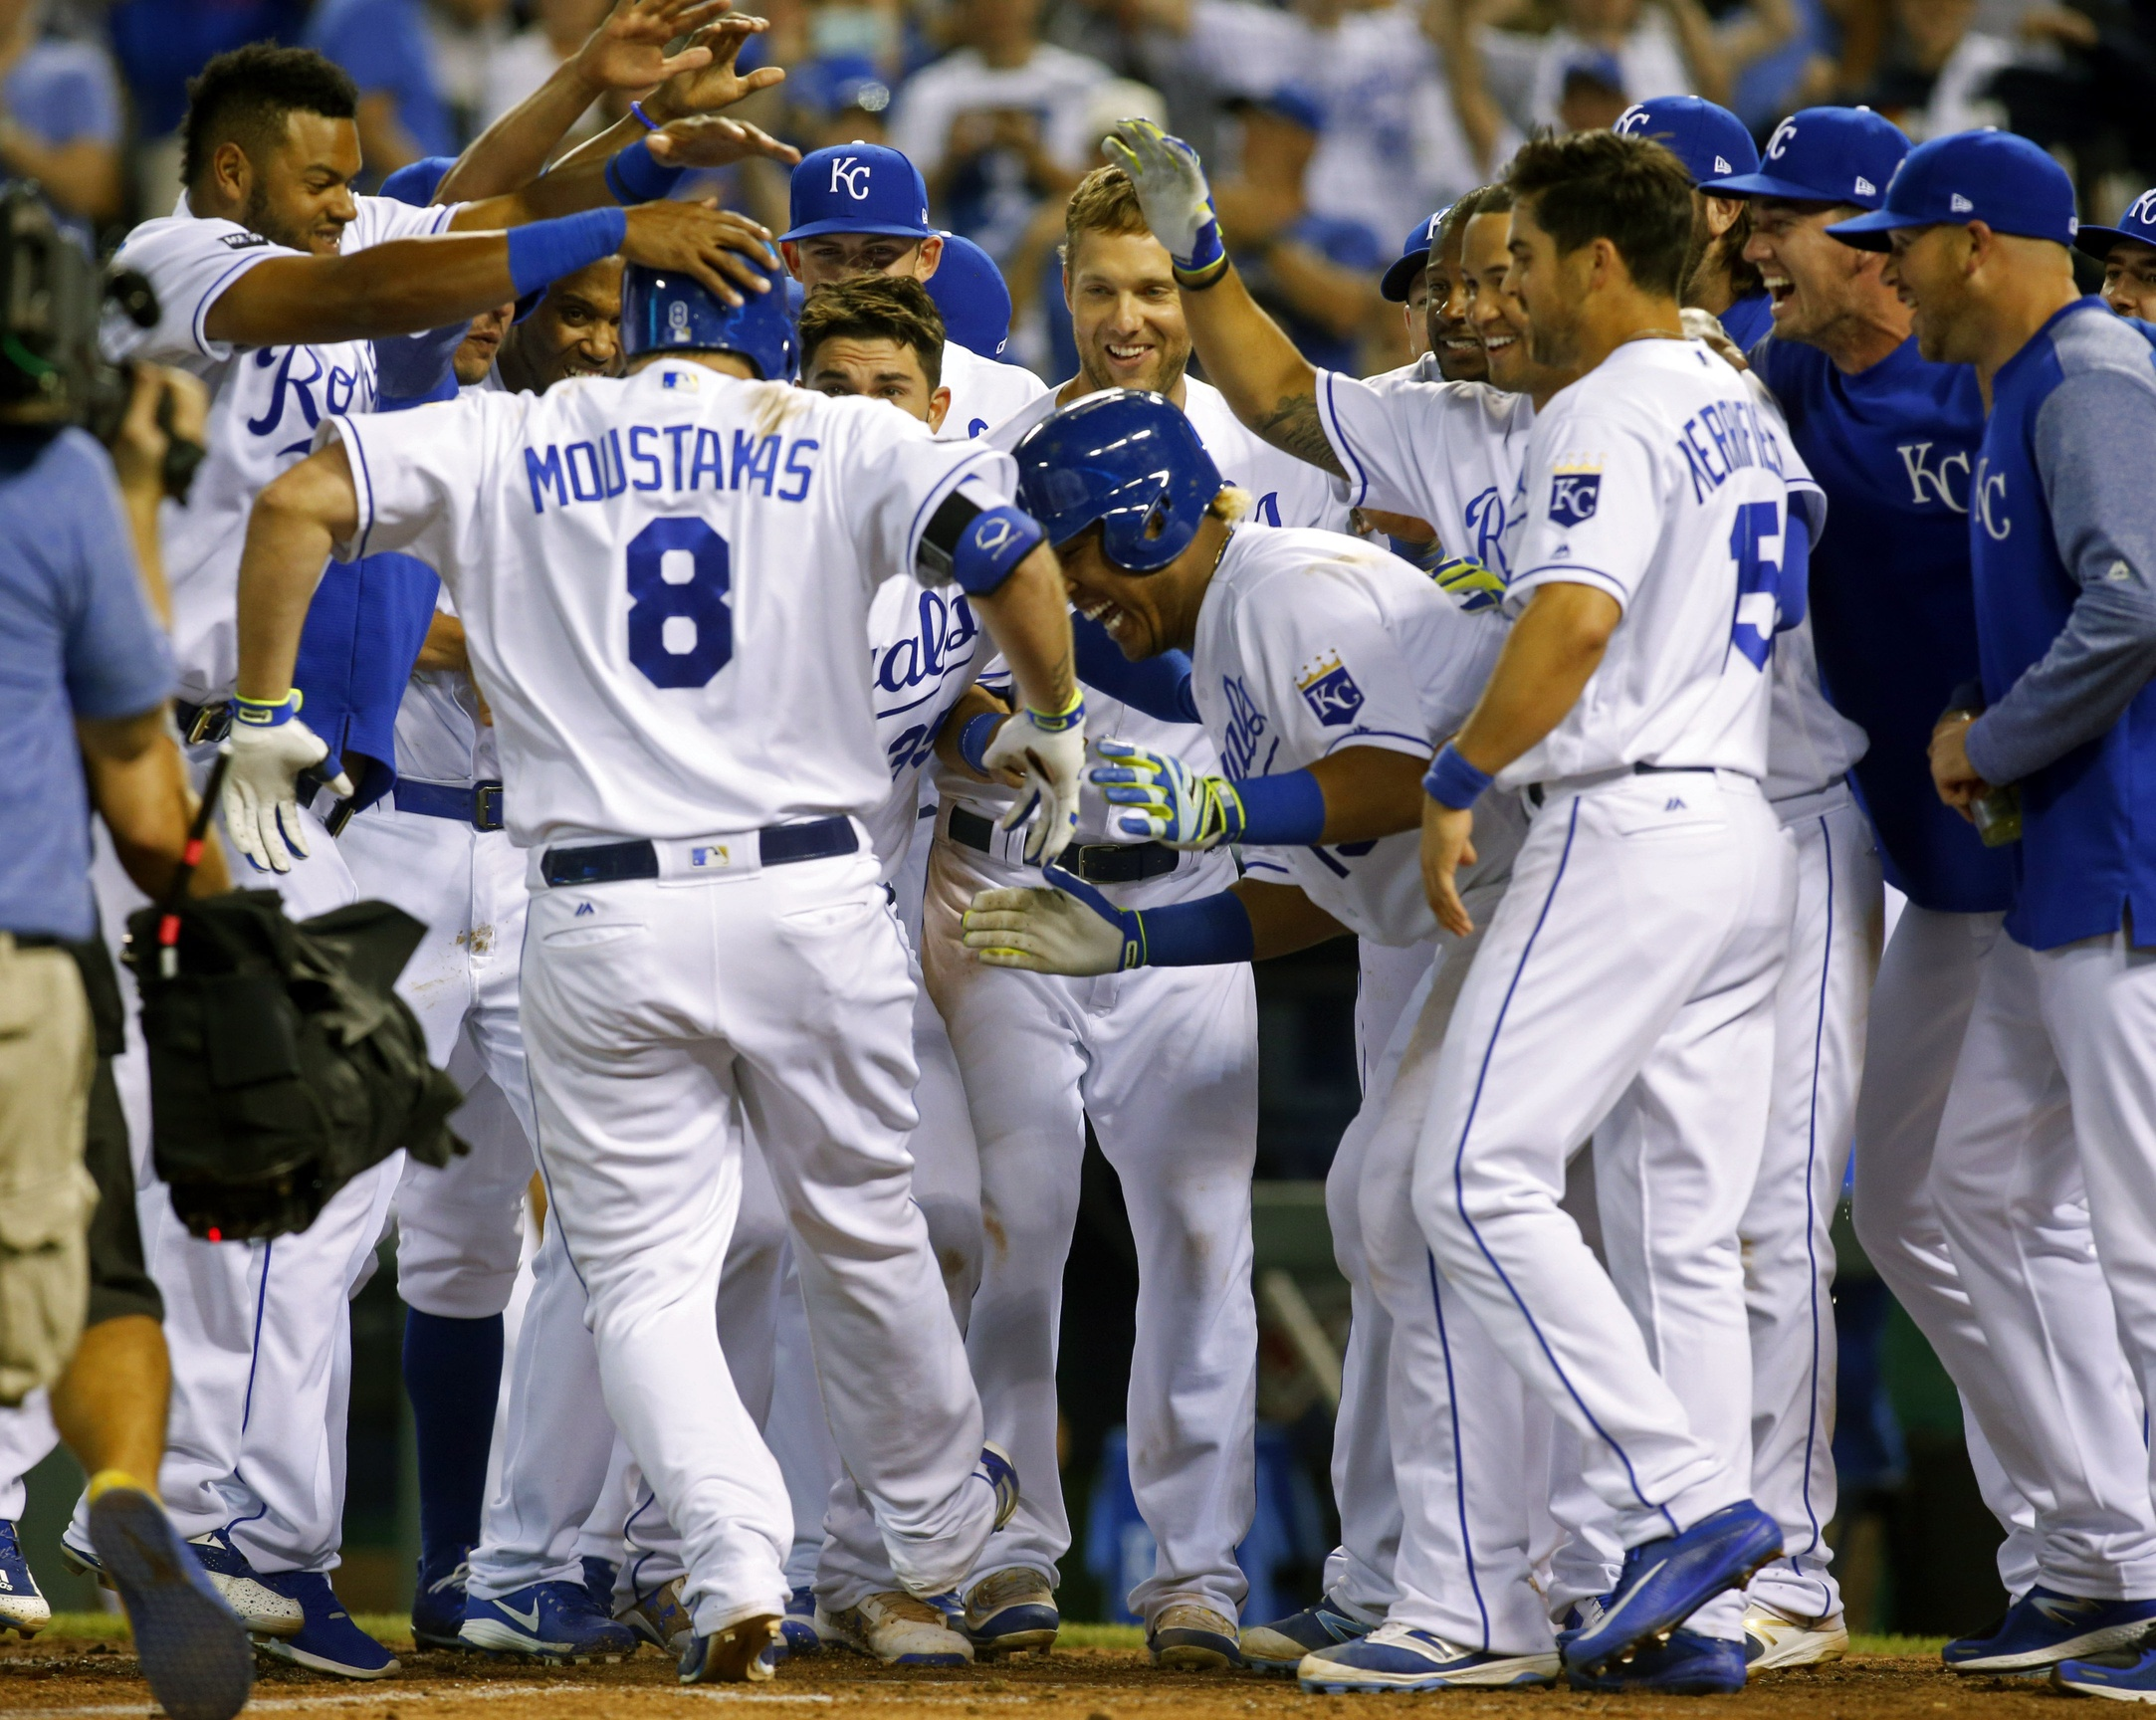 Jun 6, 2017; Kansas City, MO, USA; Kansas City Royals players congratulate designated hitter Mike Moustakas (8) at home plate after hitting a walk-off home run against the Houston Astros in the ninth inning at Kauffman Stadium. The Royals won 9-7. Mandatory Credit: Jay Biggerstaff-USA TODAY Sports